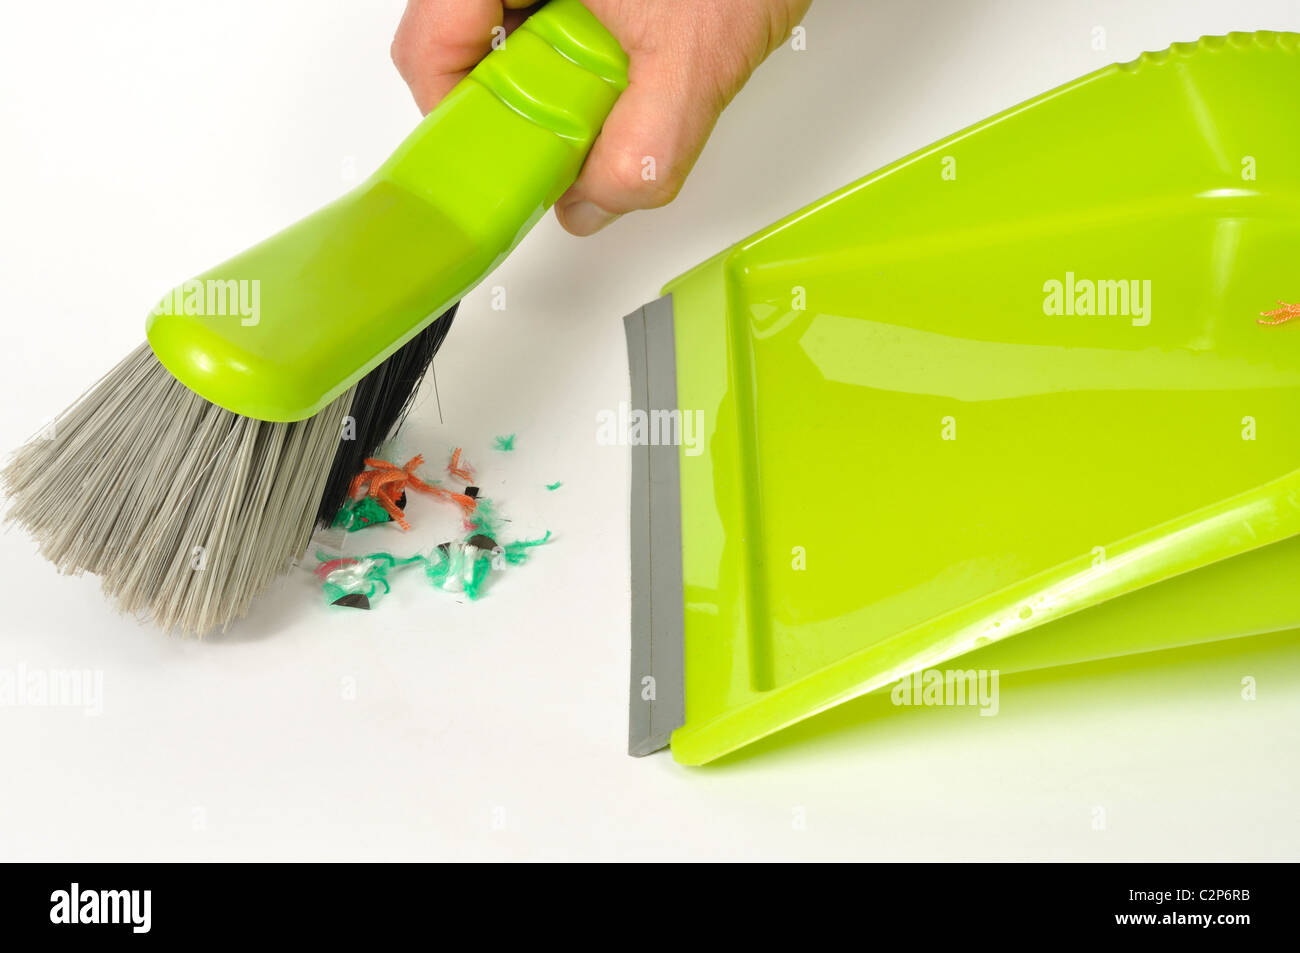 Green brush and dustpan with some garbage on white background - Stock Image